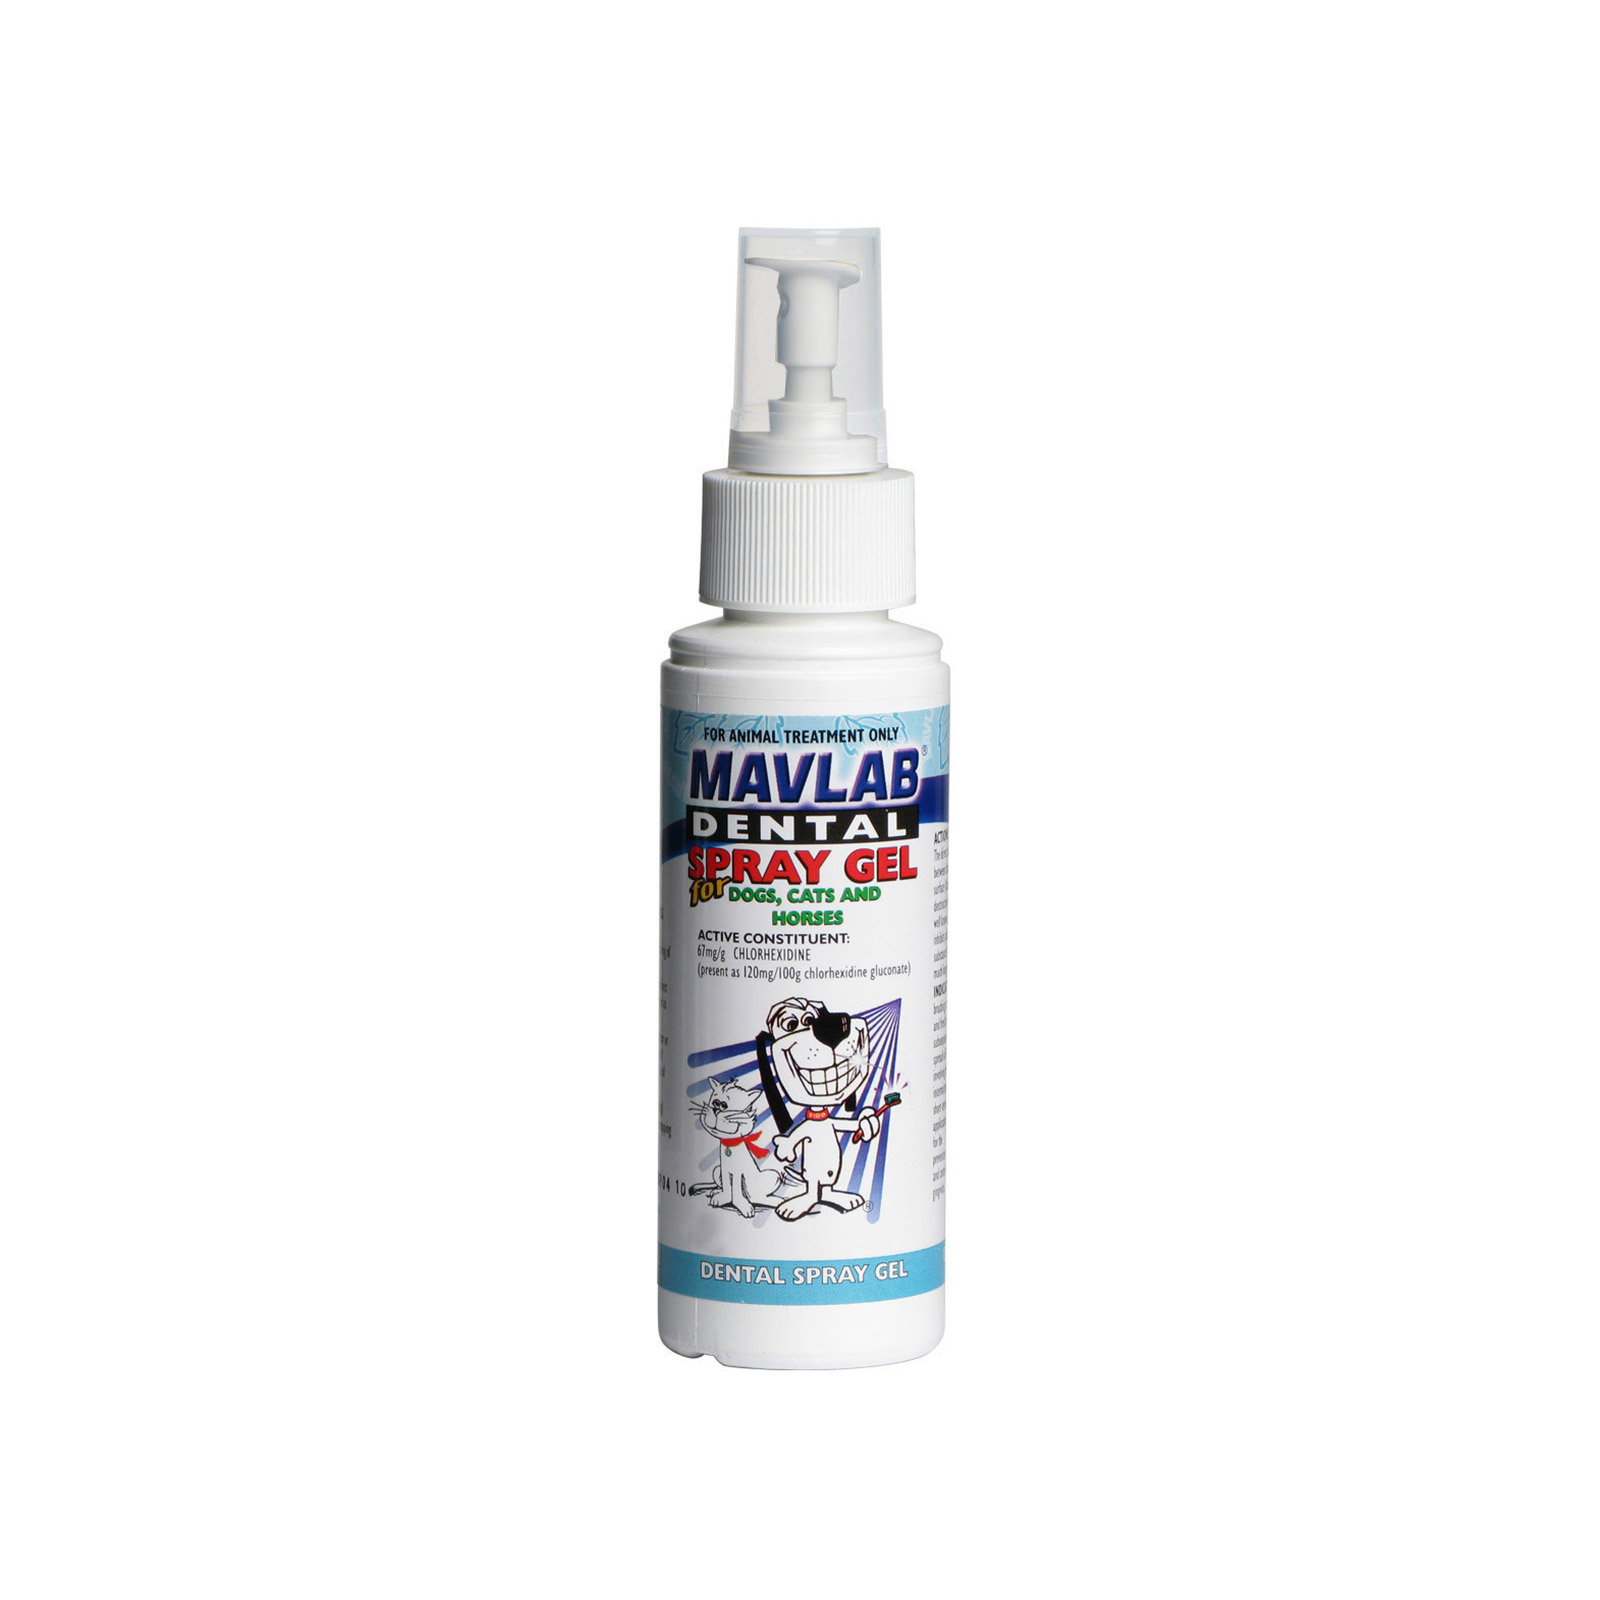 Mavlab Dental Spray Gel